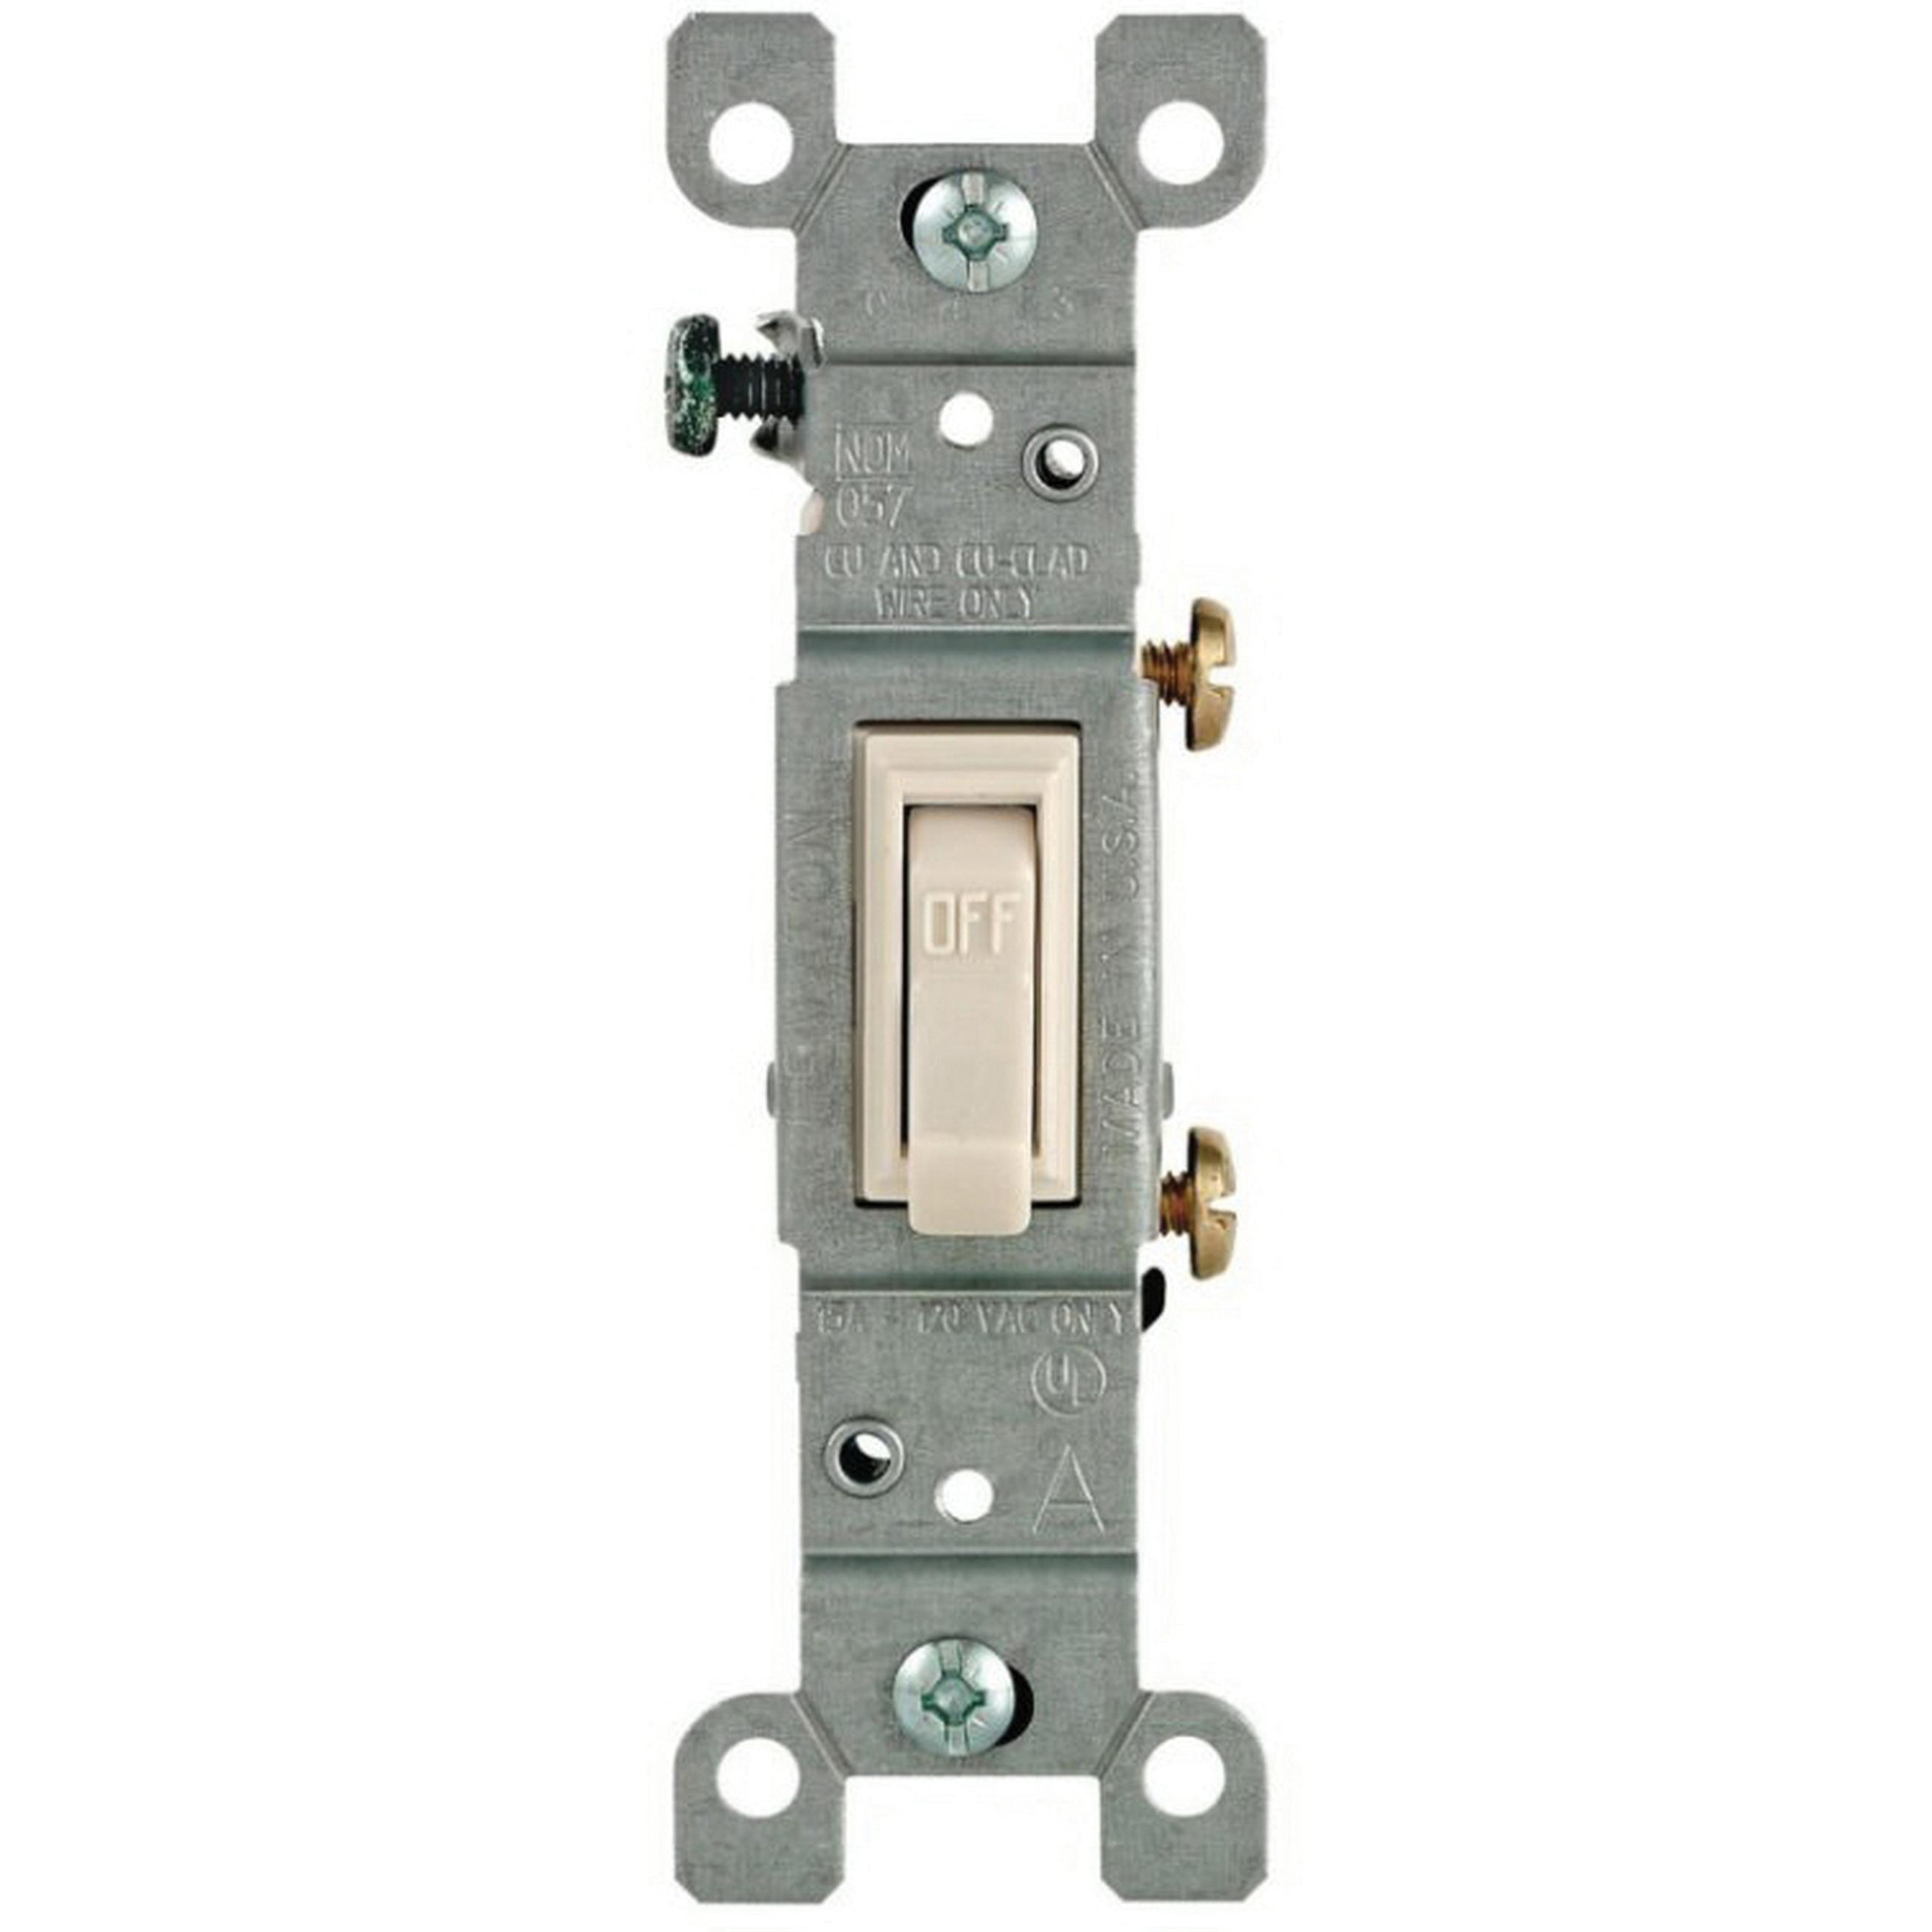 Leviton 1451-2T 120-Volt AC 15-Amp 1-Pole Residential Grade Toggle on